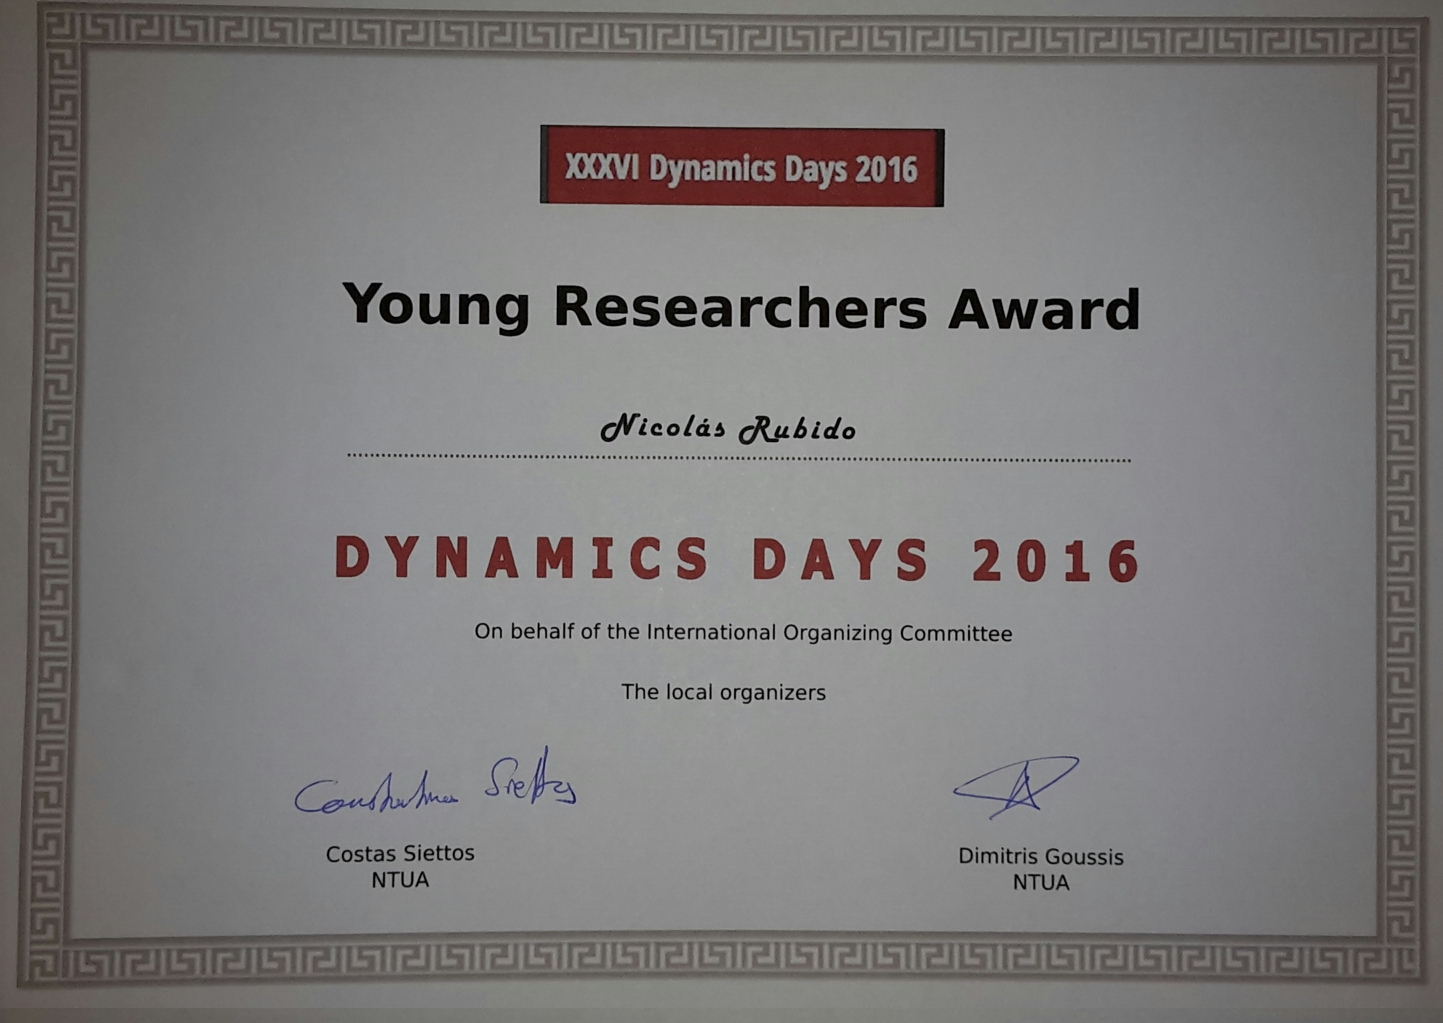 YoungResearchersAward_DDaysEurope2016